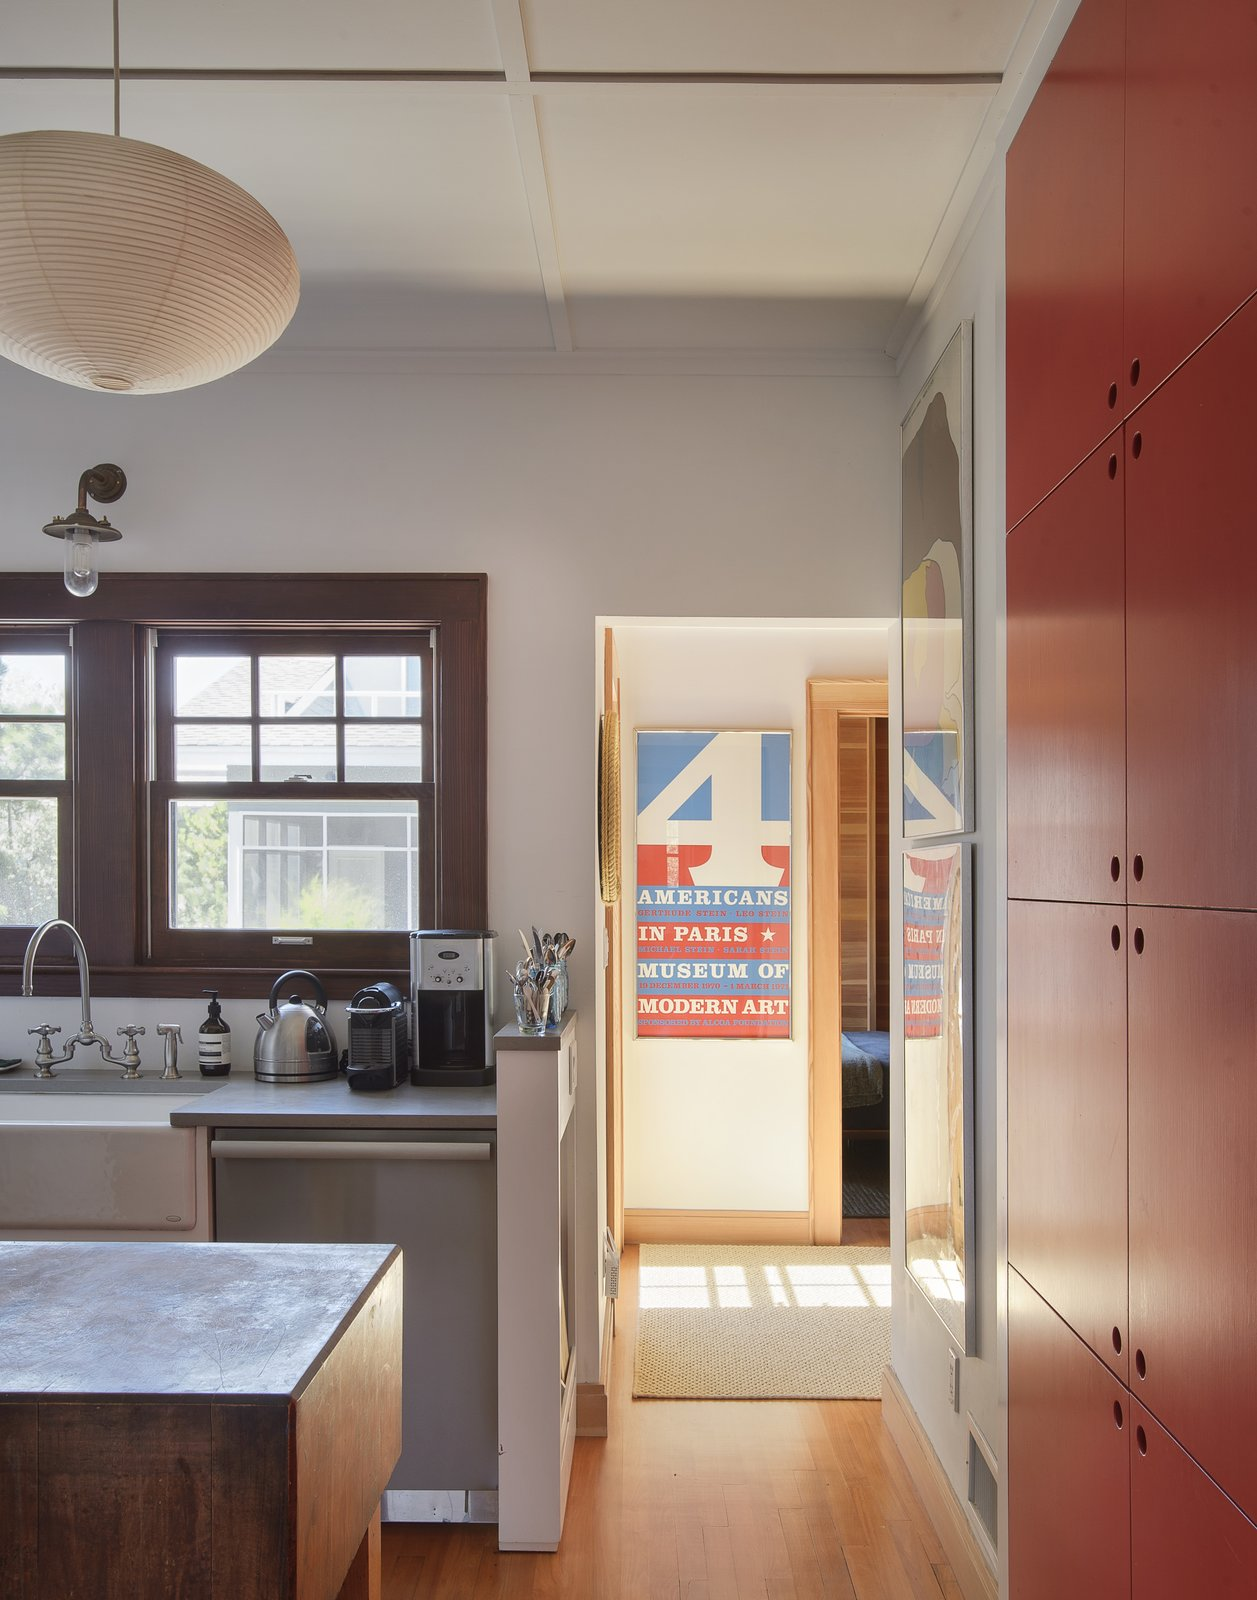 Kitchen, Pendant Lighting, Dishwasher, Vessel Sink, Colorful Cabinet, and Wall Lighting  Best Photos from This Eclectic Beach Bungalow on Fire Island Was Saved After Sandy